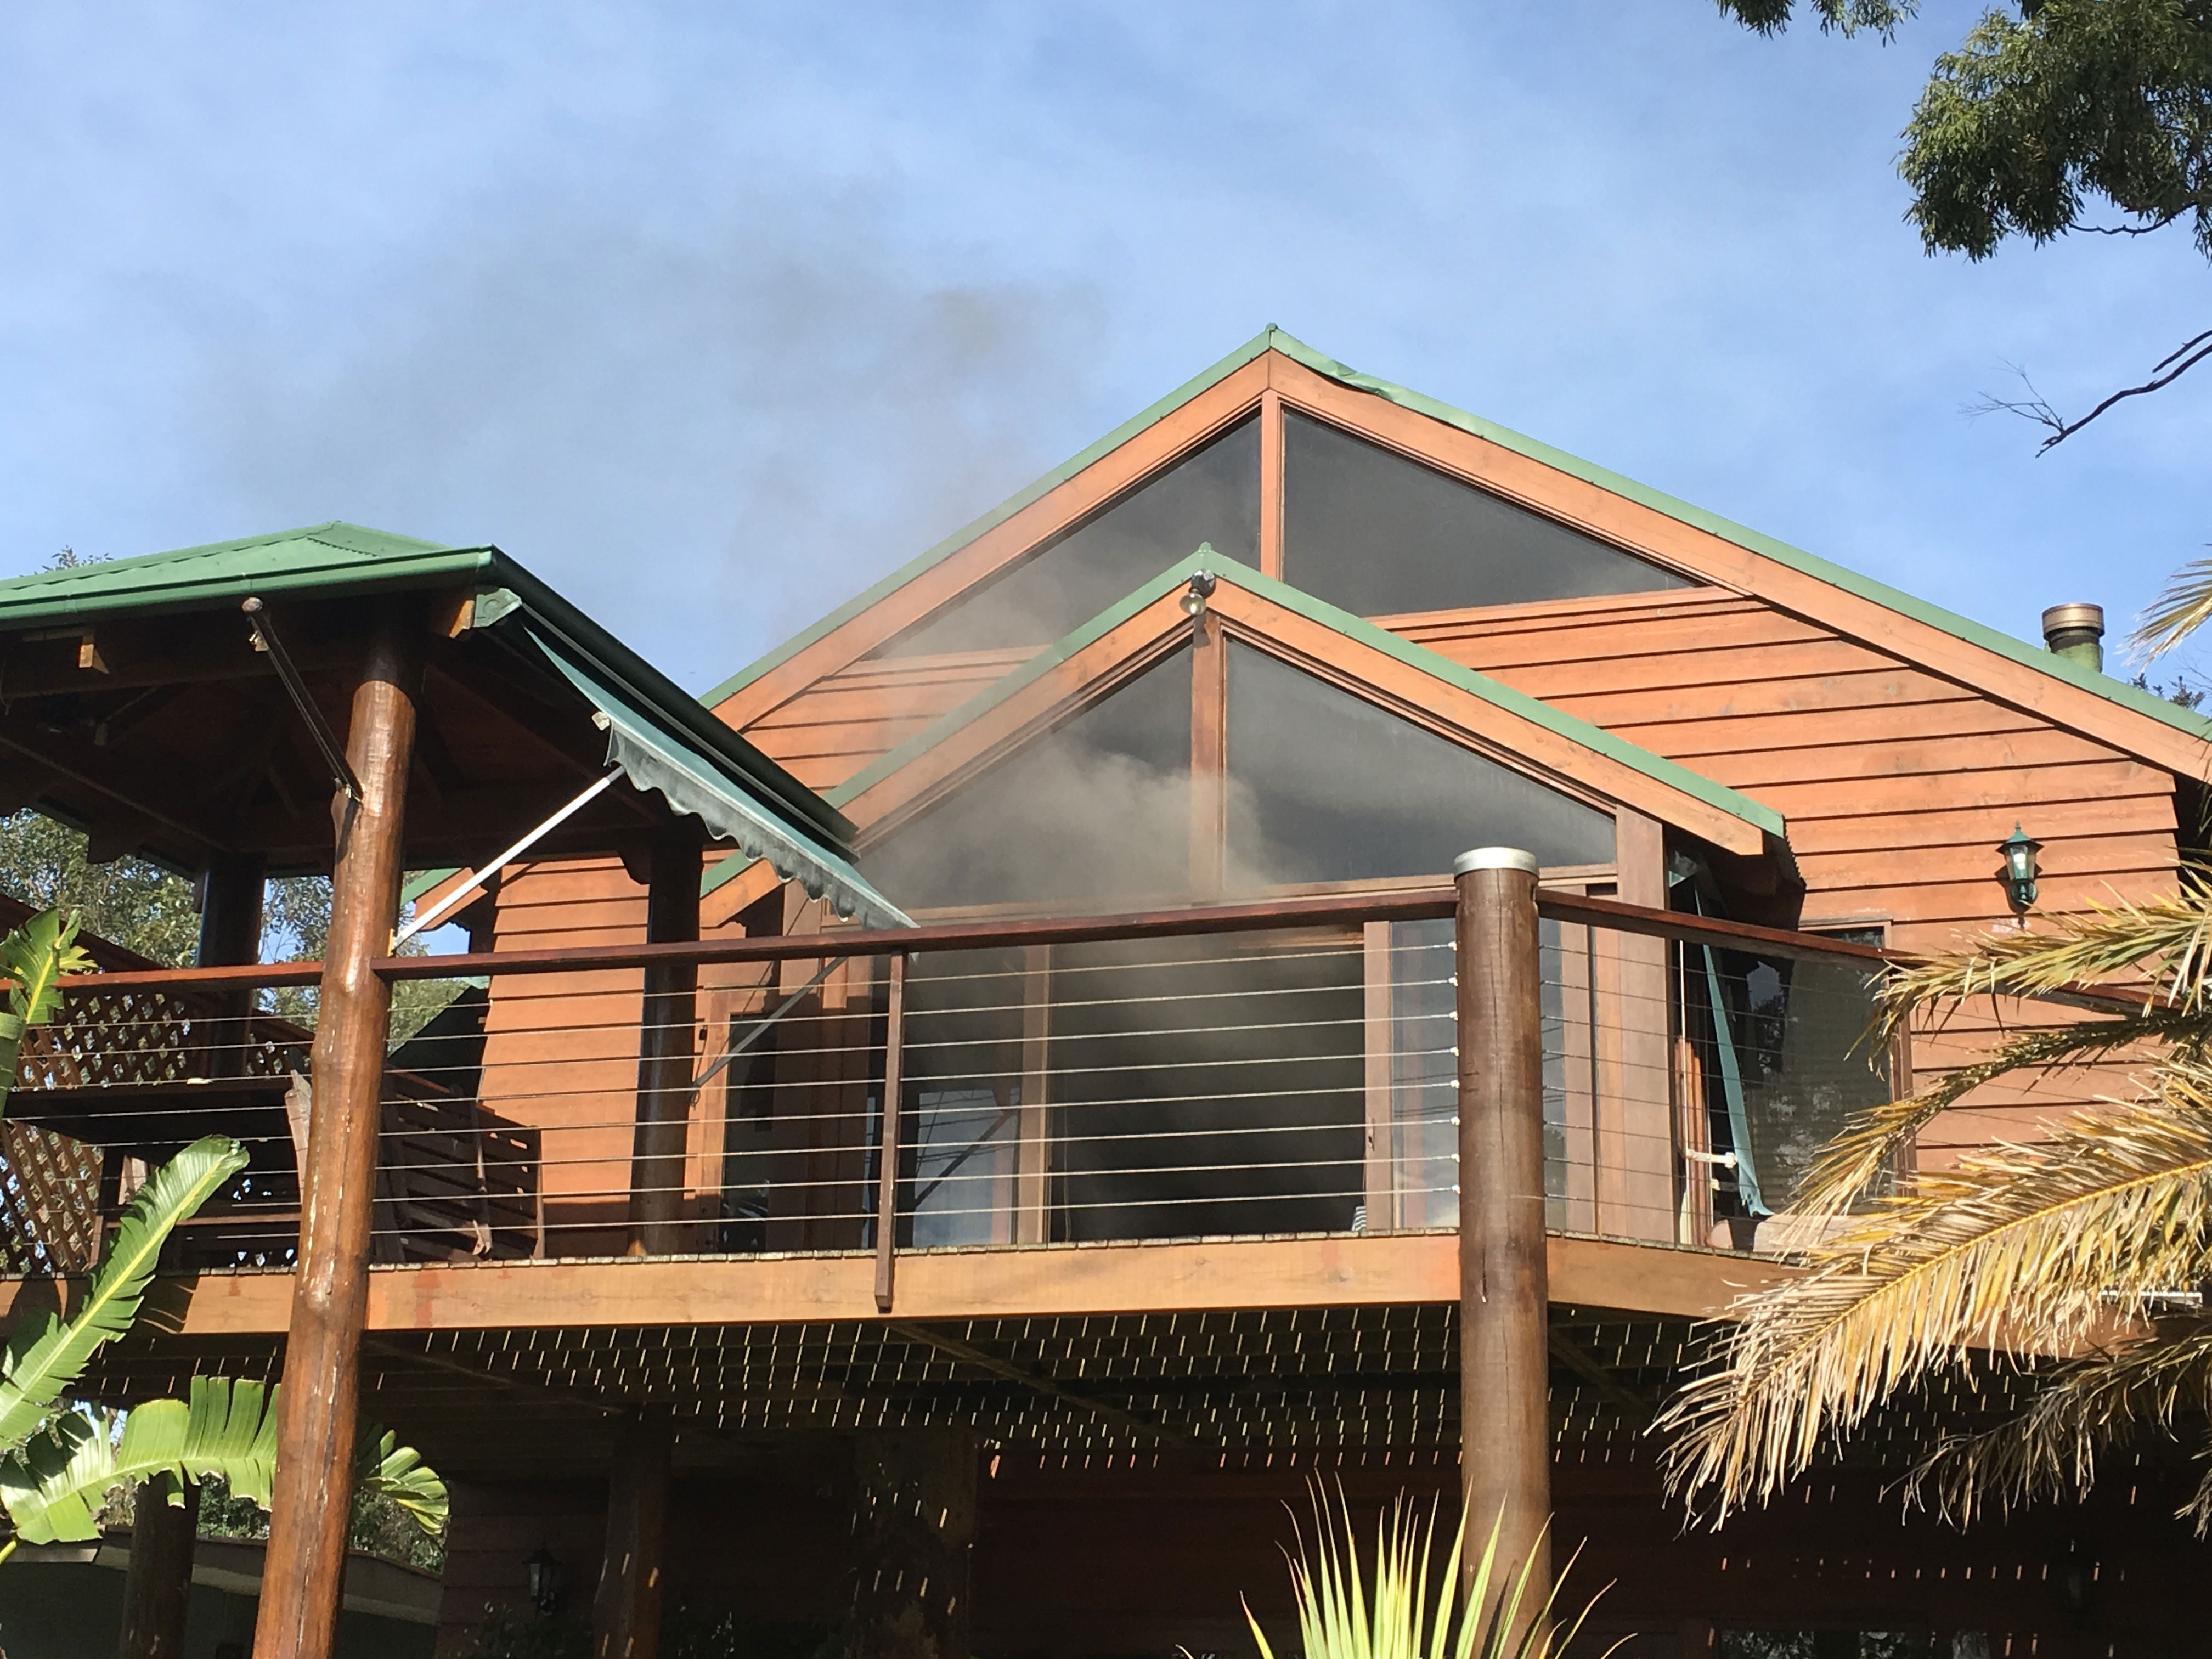 Smoke billowing from the upper level of the premises in Karthena Stree Hawks Nest.